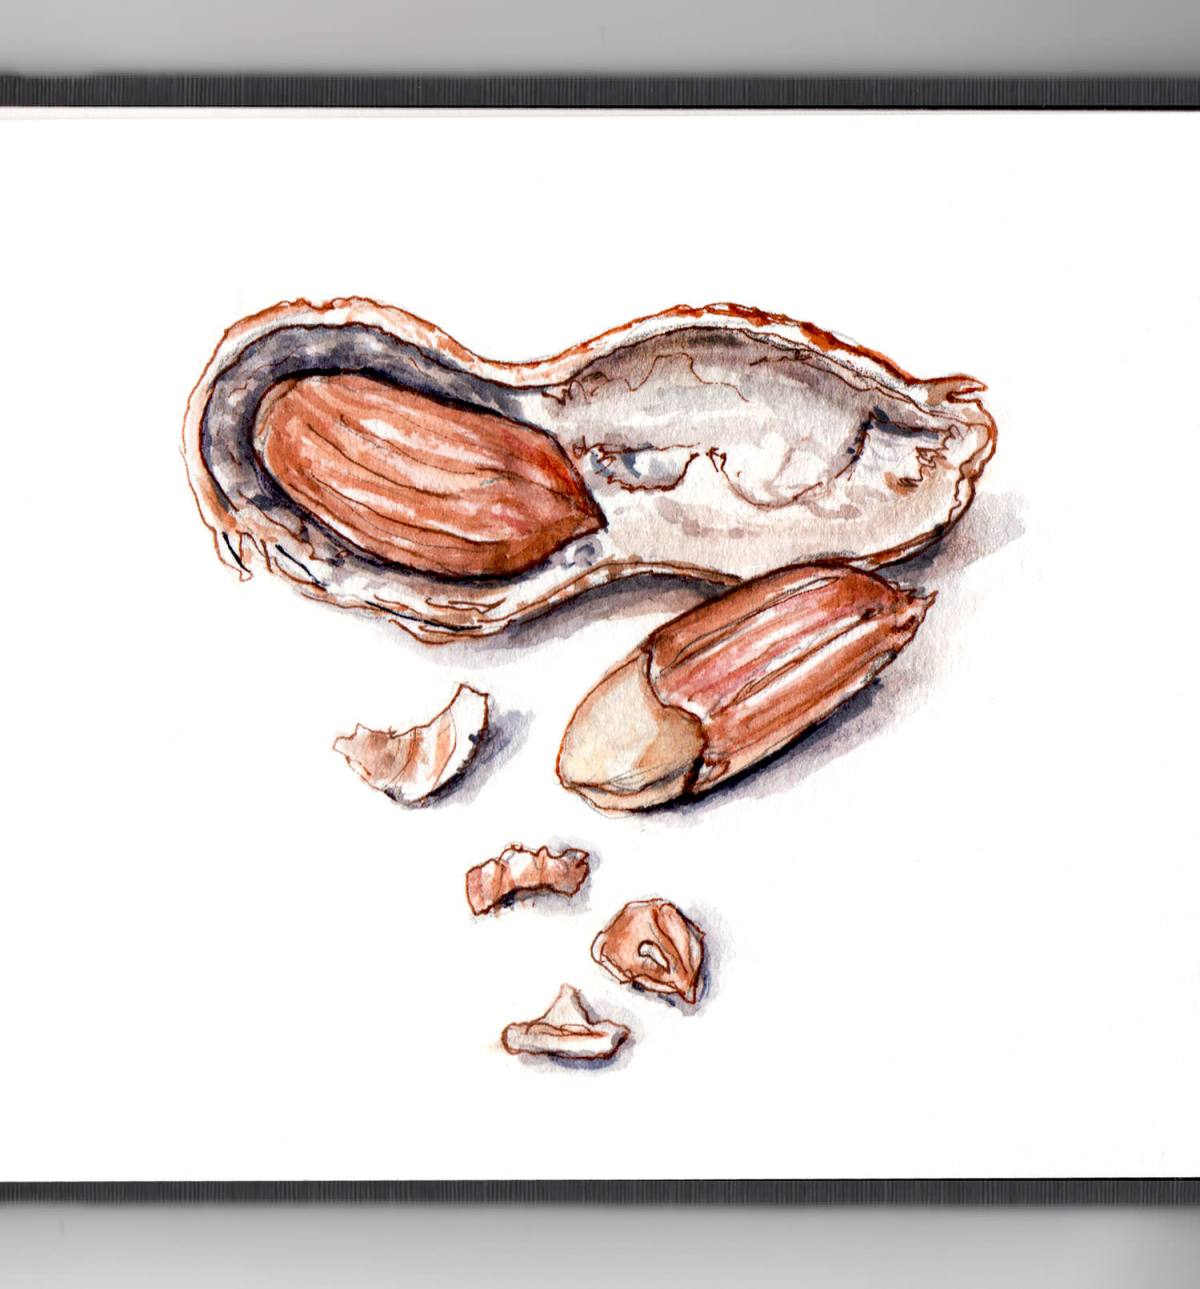 Day 26 - #WorldWatercolorGroup - Peanuts In The Shell Watercolor Illustration Food - #doodlewash